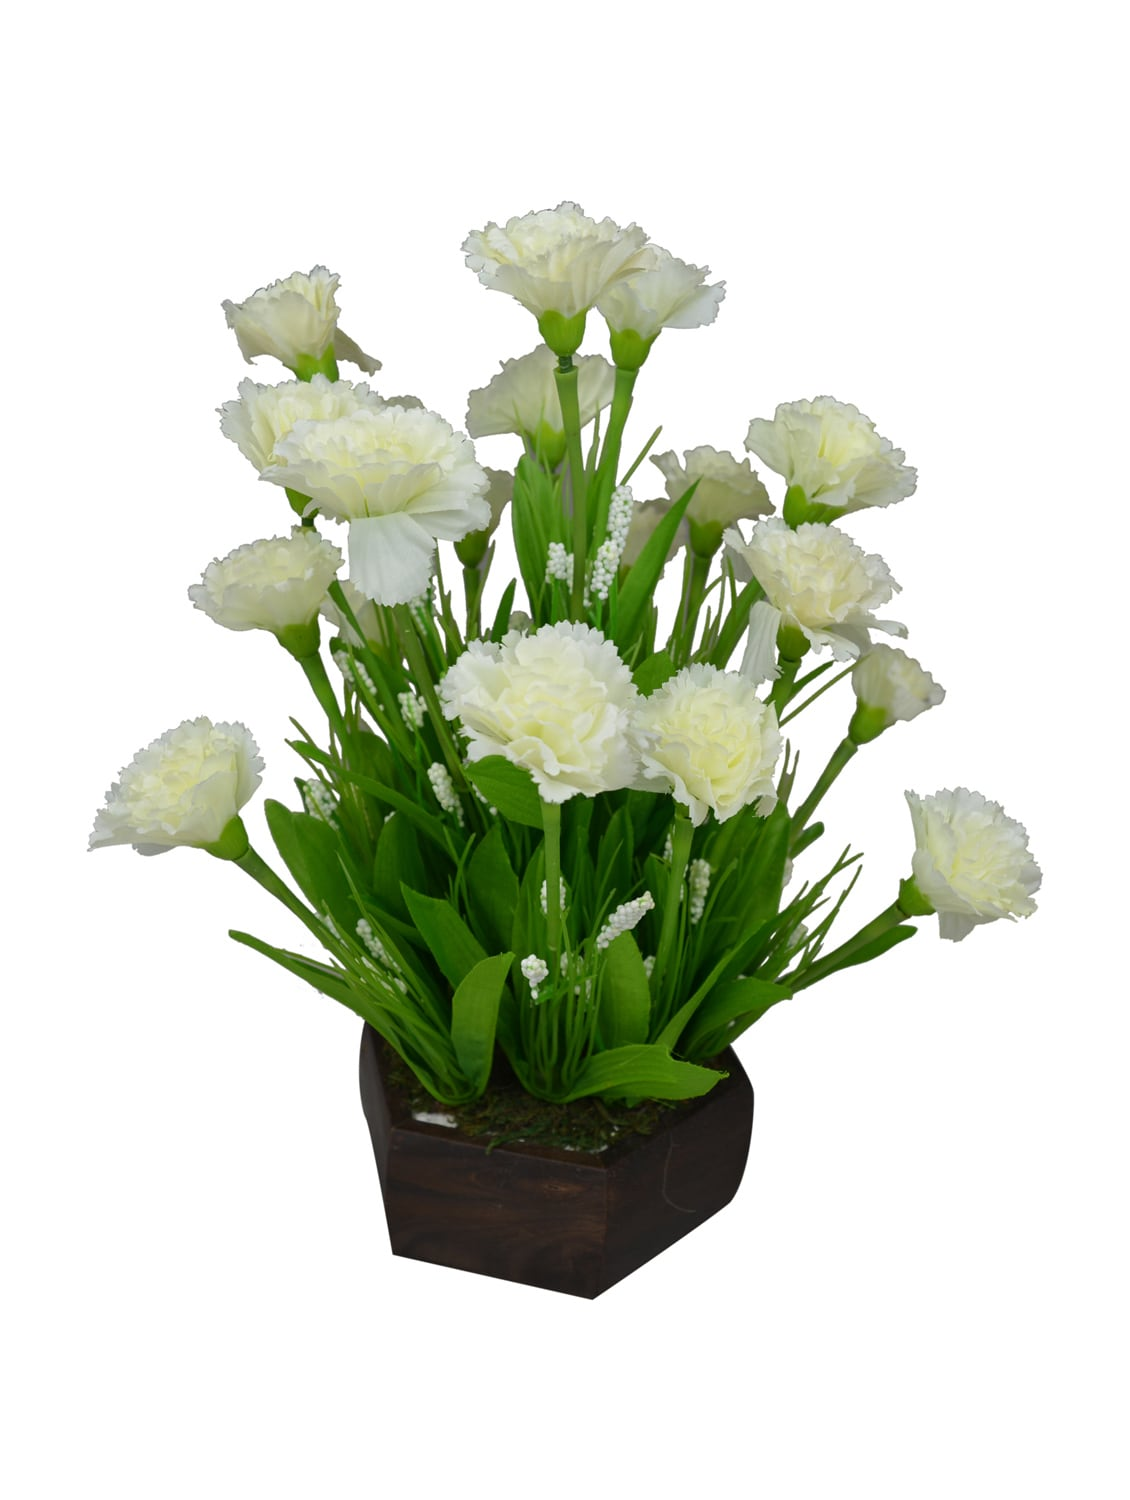 Buy Artificial Carnation Flower Arrangement With Wood Pot For